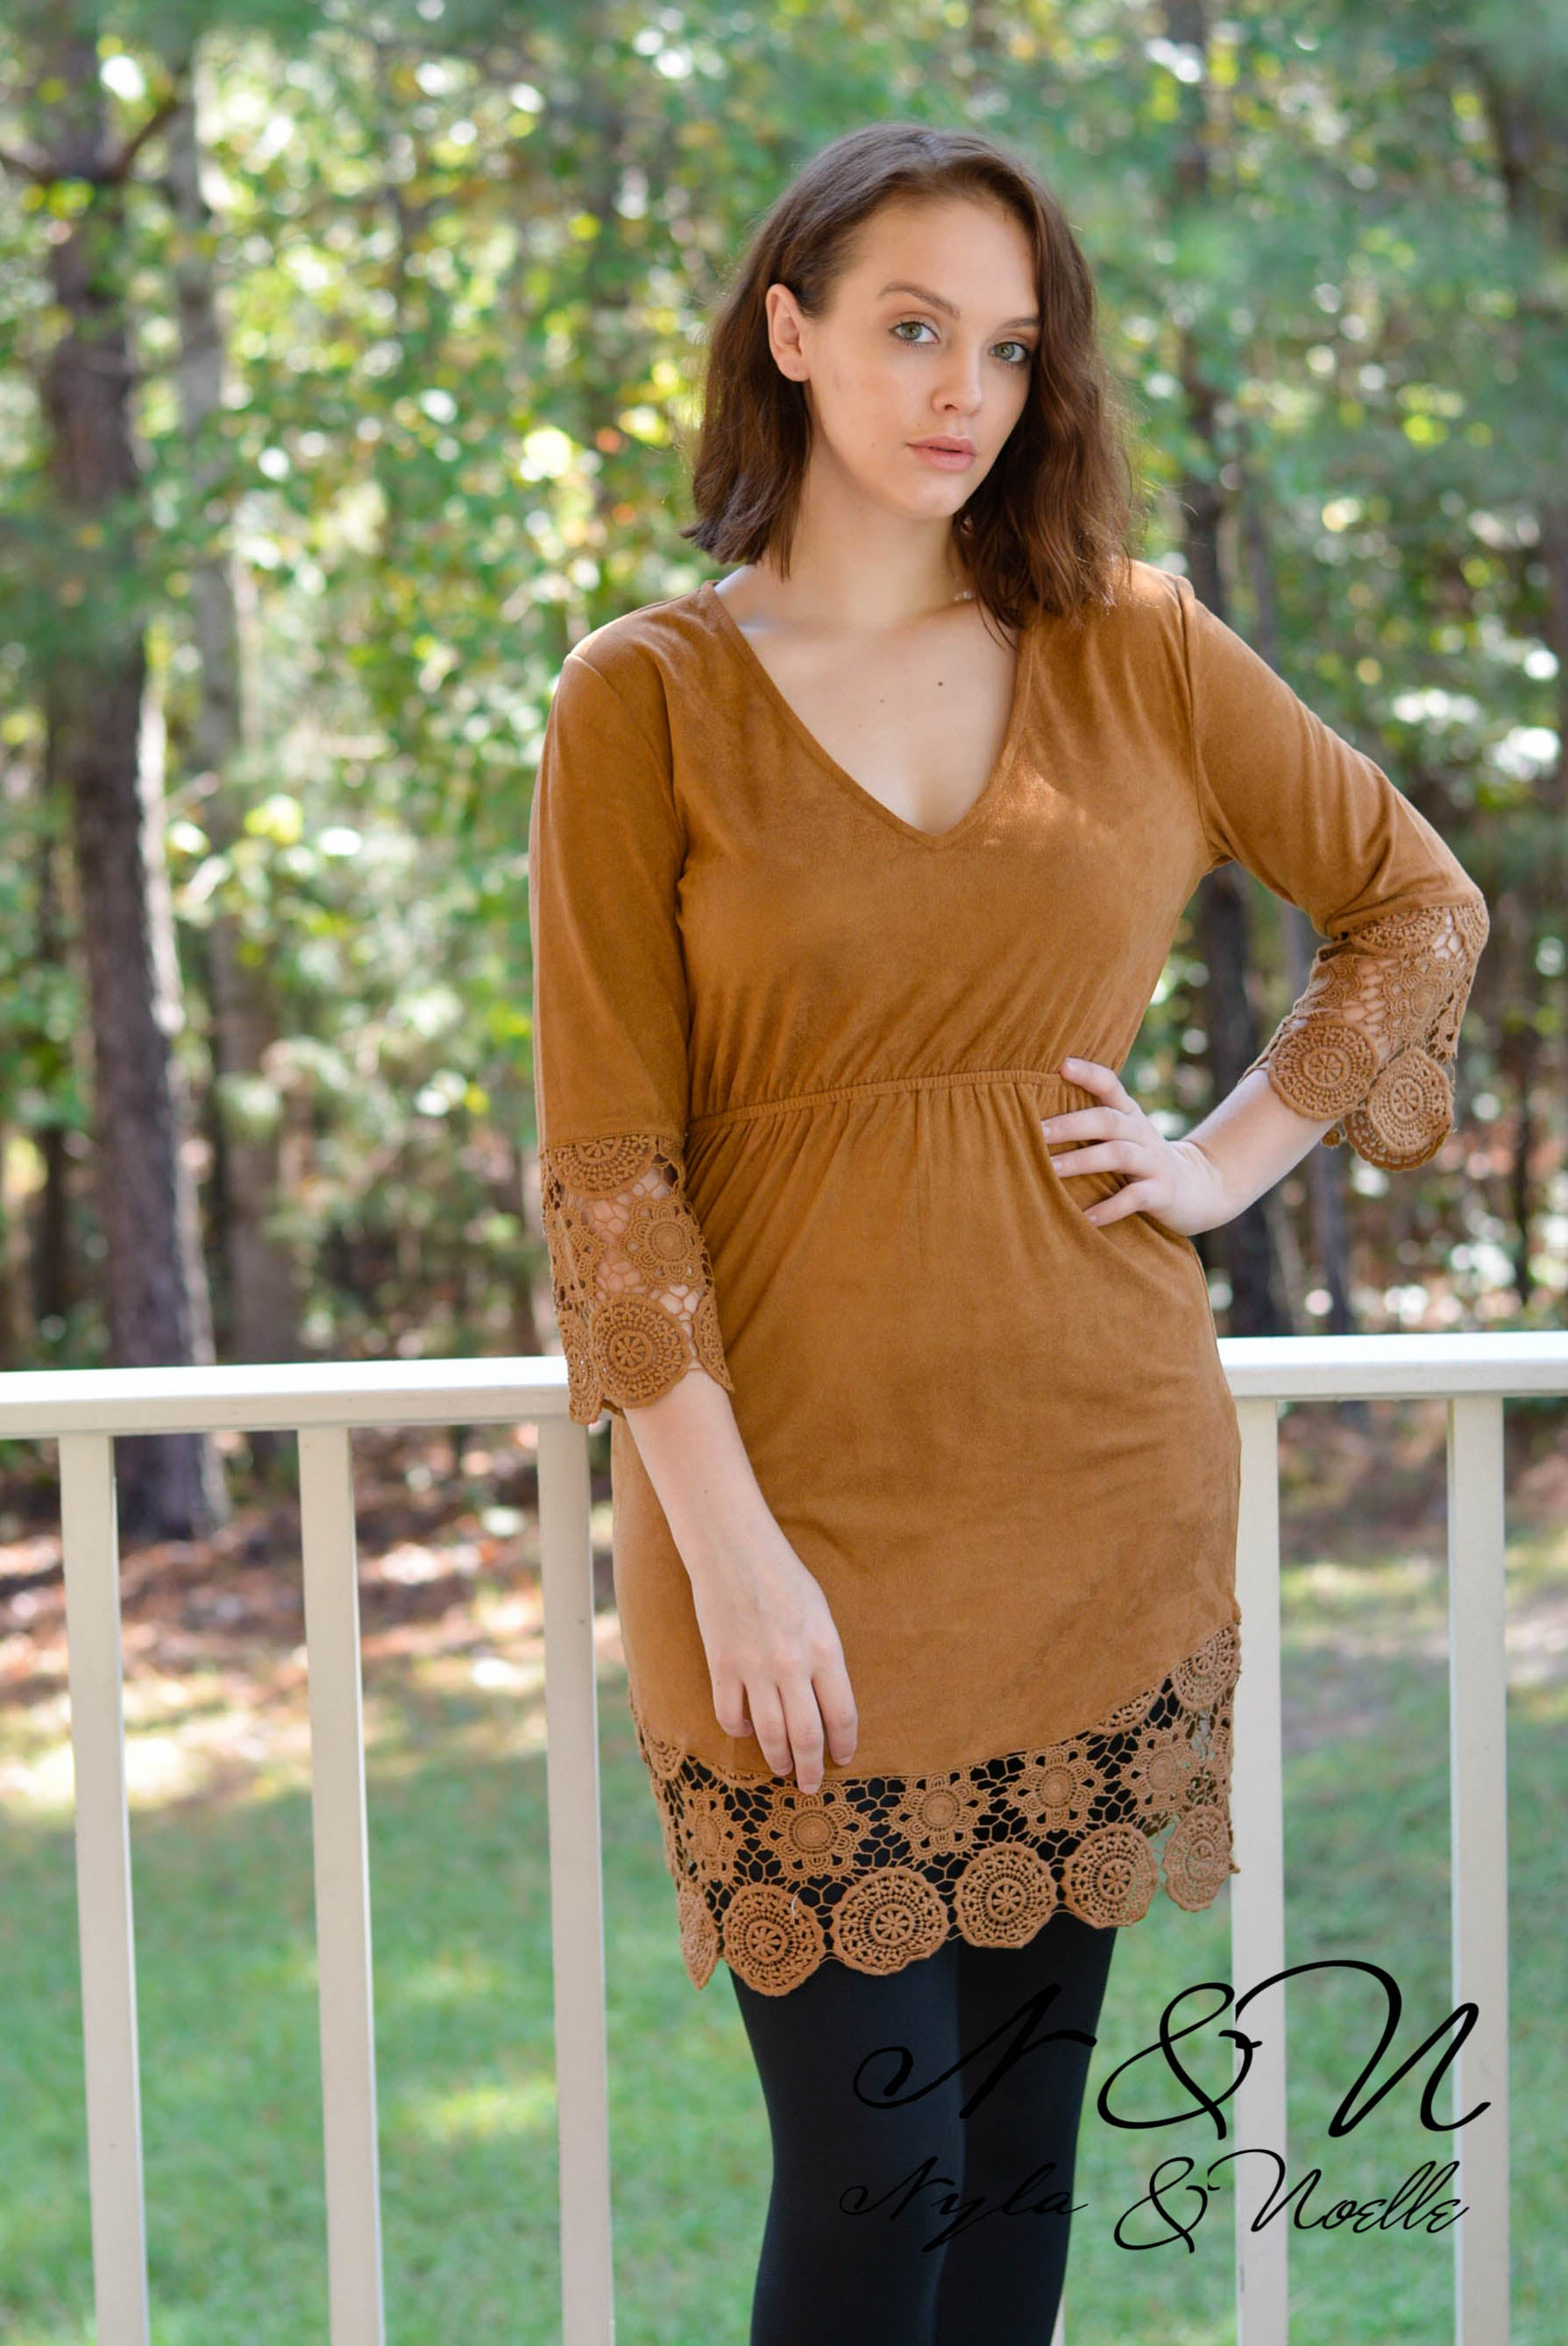 CHARLY - Micro-Suede Long Tunic or Leggings Dress with Crochet Lace Accents 59bb50311